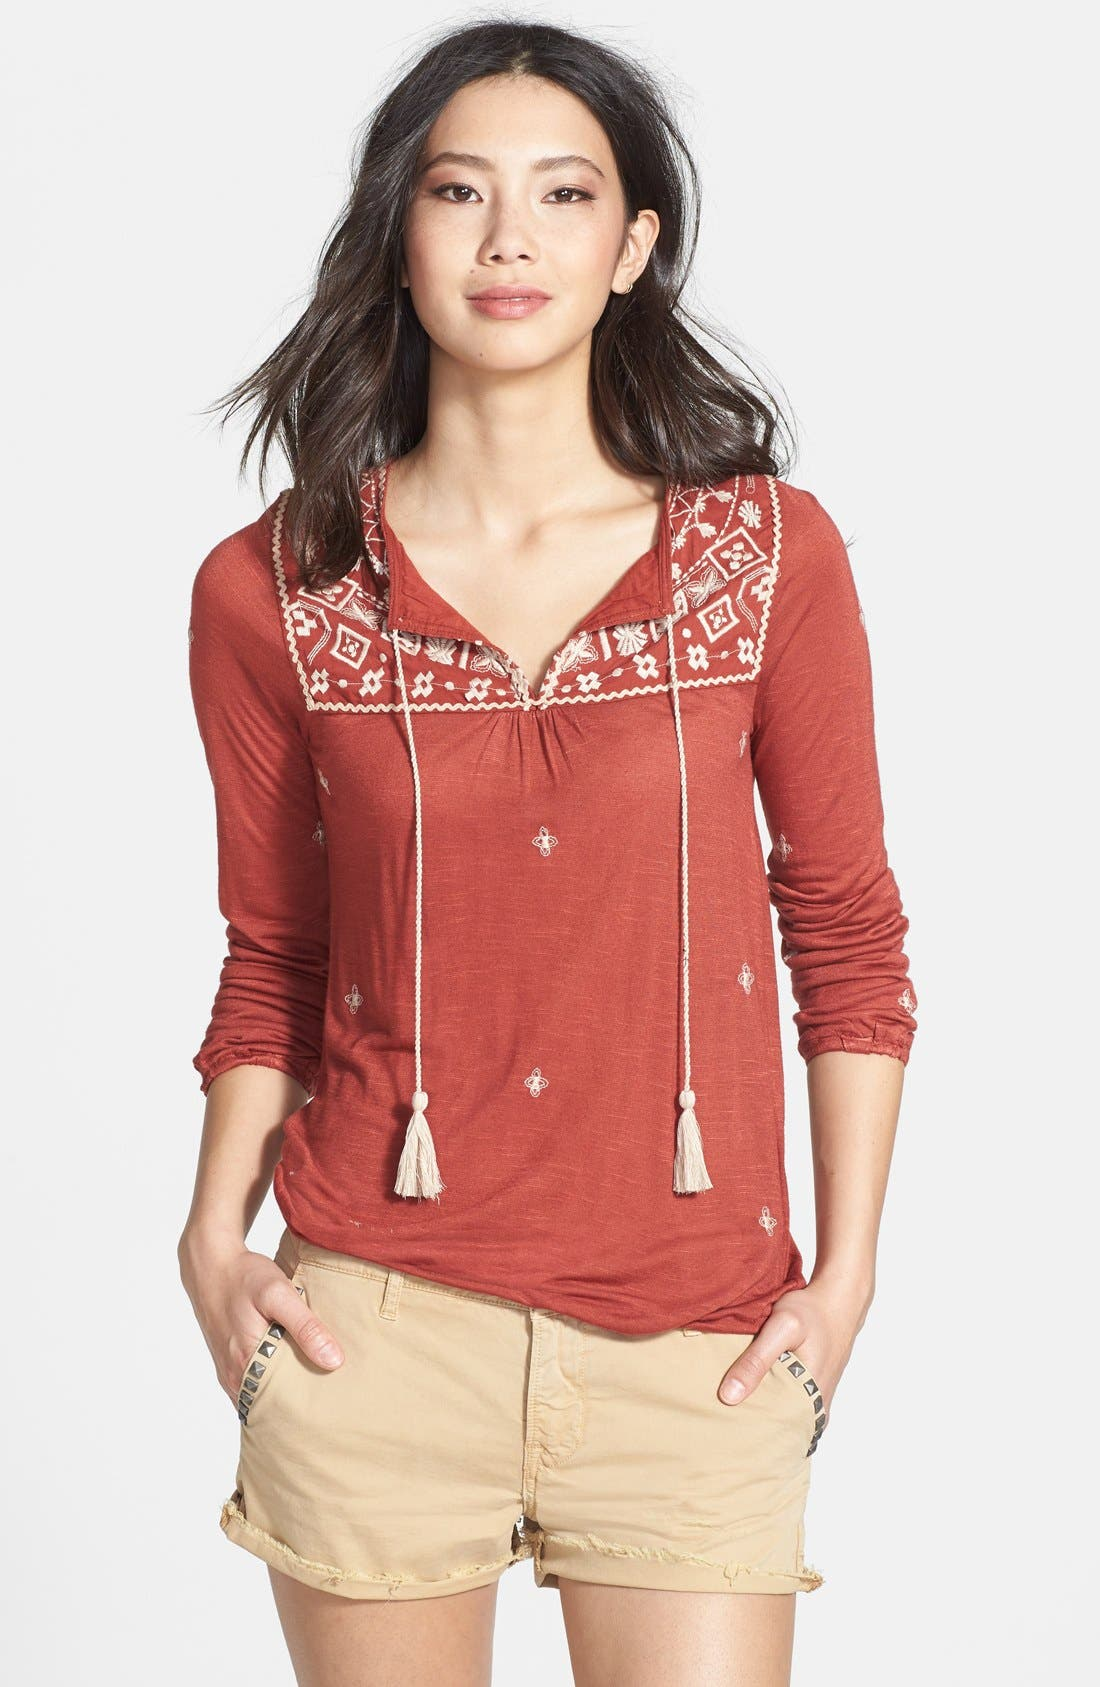 Alternate Image 1 Selected - Lucky Brand 'Winona' Embroidered Top